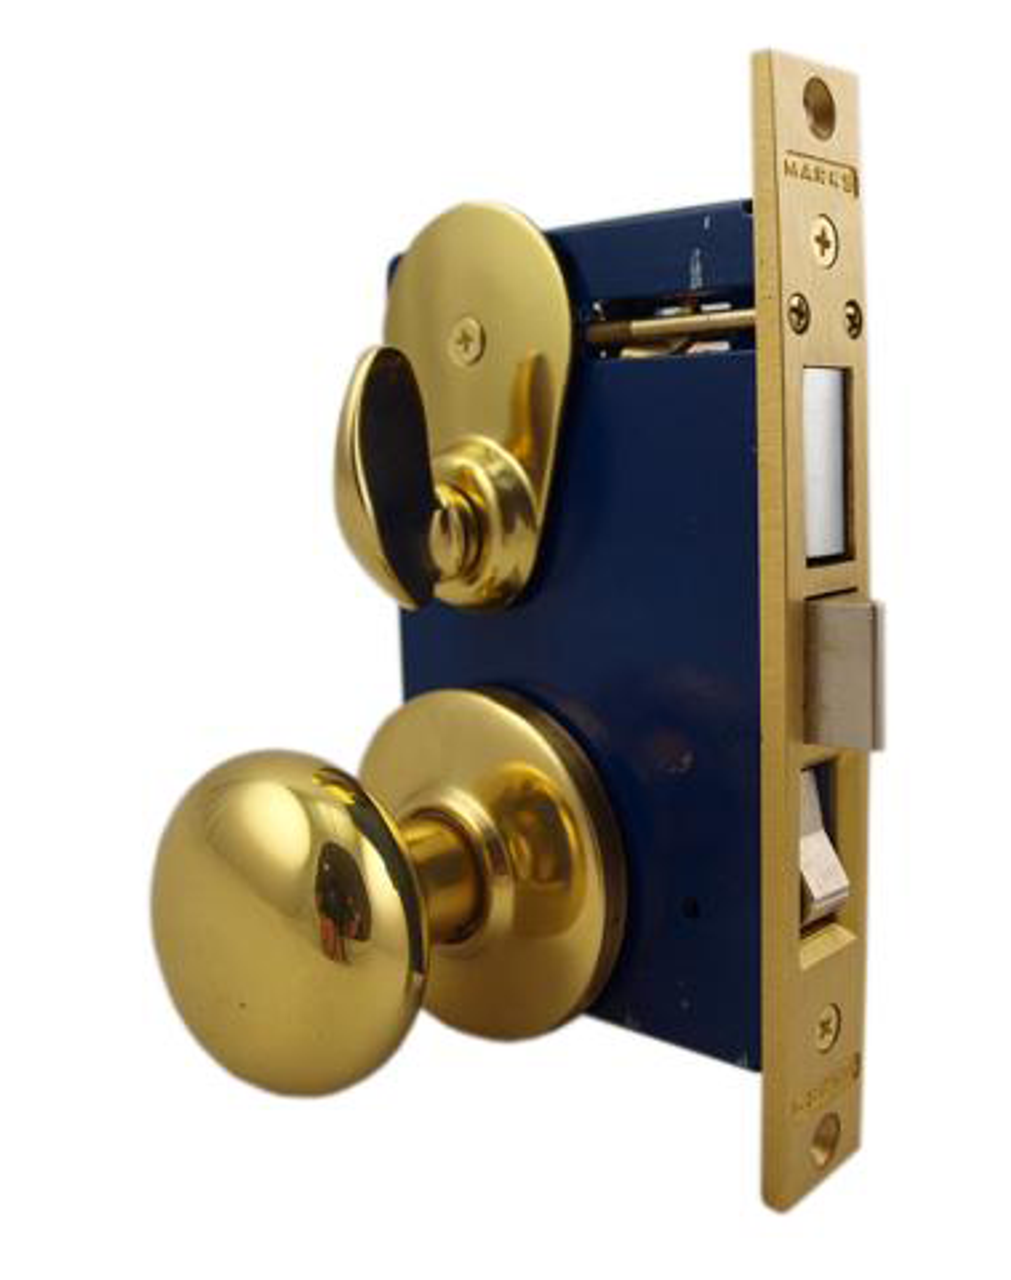 Marks Storm And Security Door Lock 22f 3